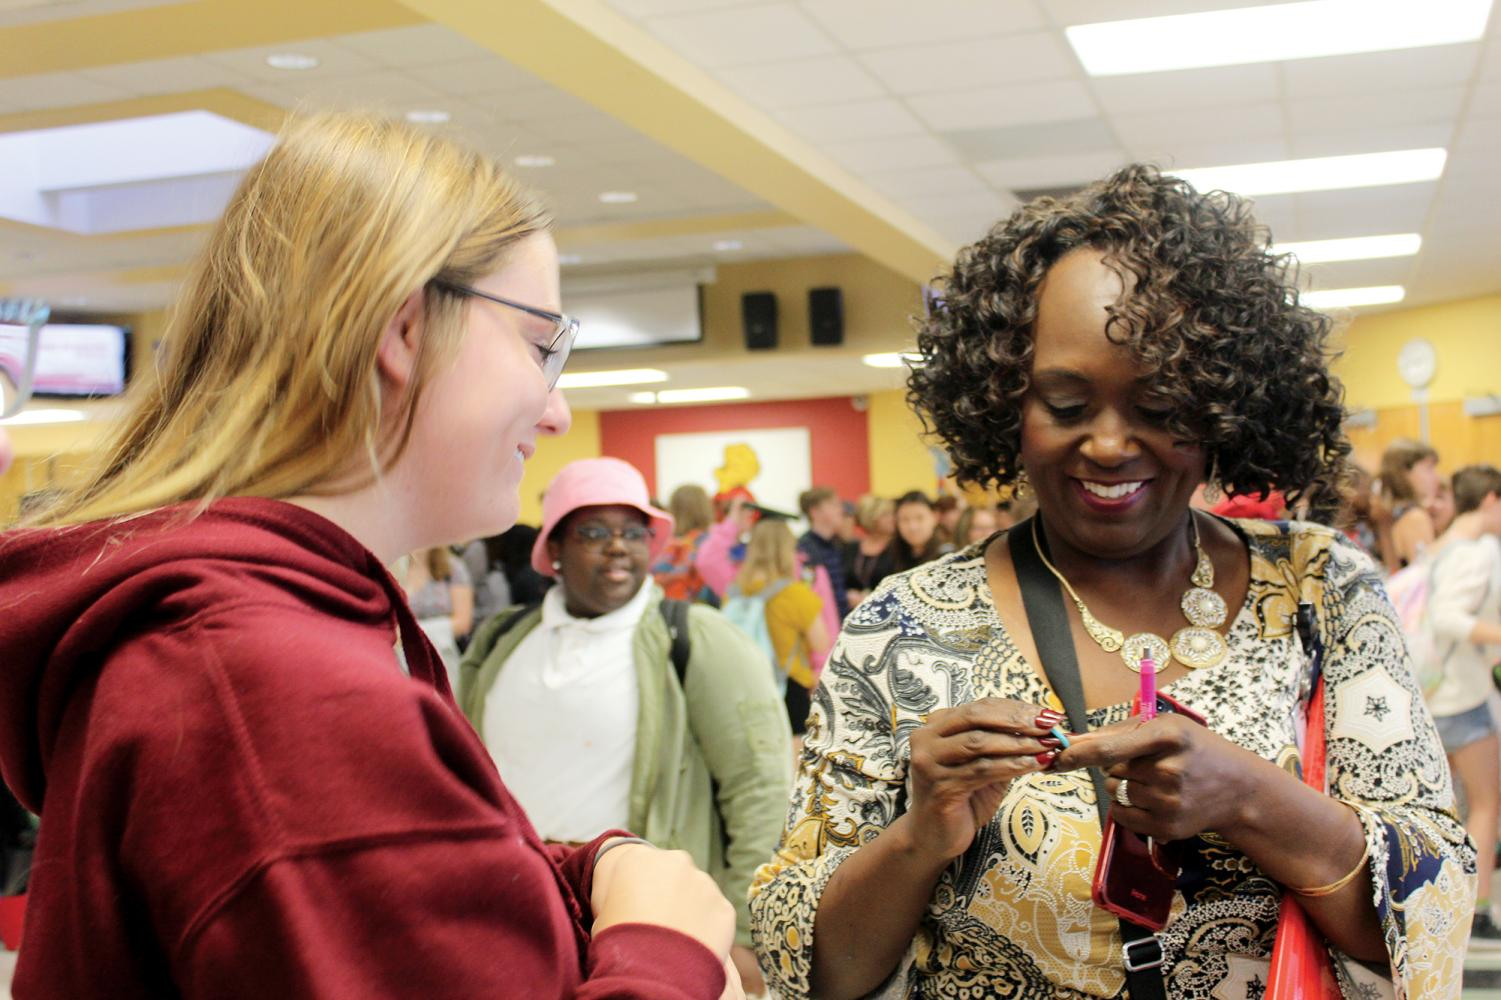 """At the Club Fair on Aug. 26, senior Megan Drumm gives interim principal Cynthia Johnson a pin reading """"You put the pal in principal."""" Drumm got the pin on a visit to the Herff Jones yearbook plant earlier that day. """"I saw the pin and immediately thought of Mama J,"""" Drumm said."""